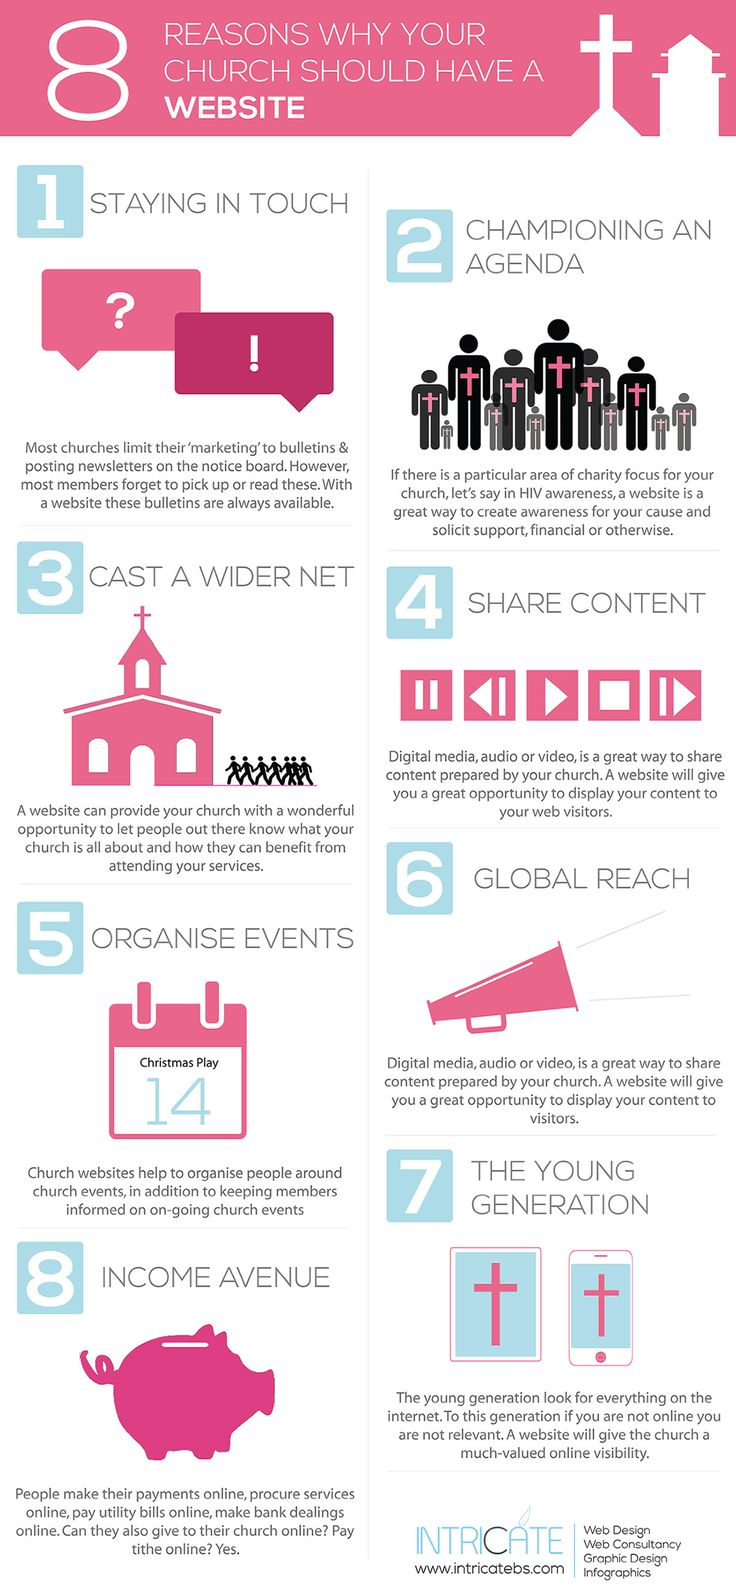 this infographic shows 8 reasons why churches need websites and should start